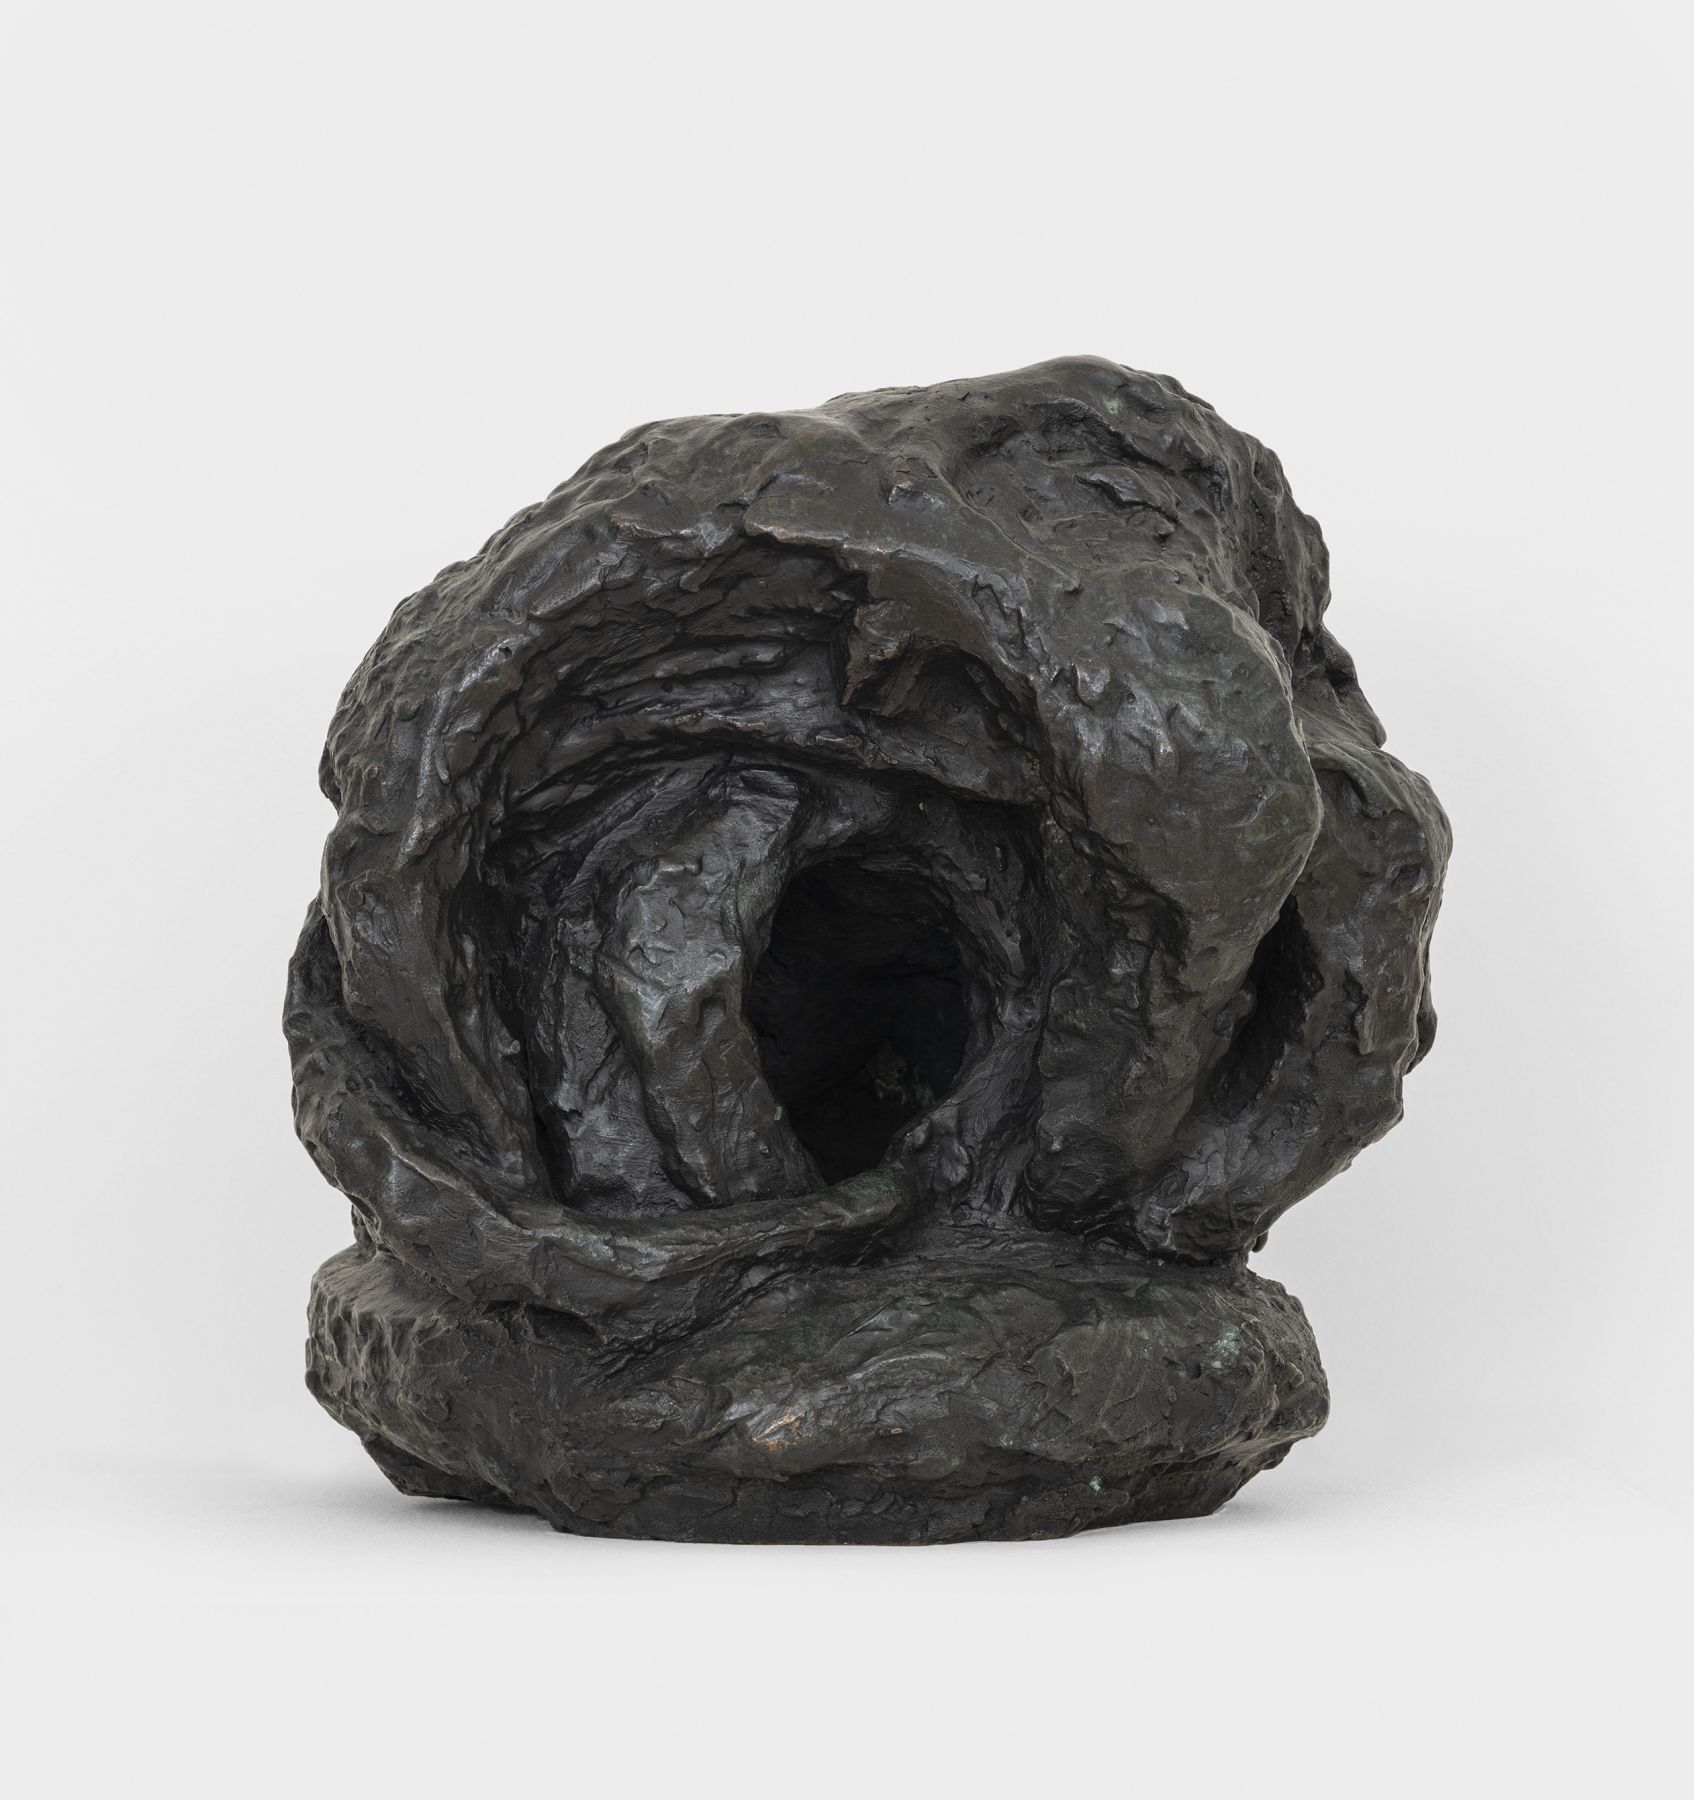 Louise Bourgeois - Rondeau For L 1